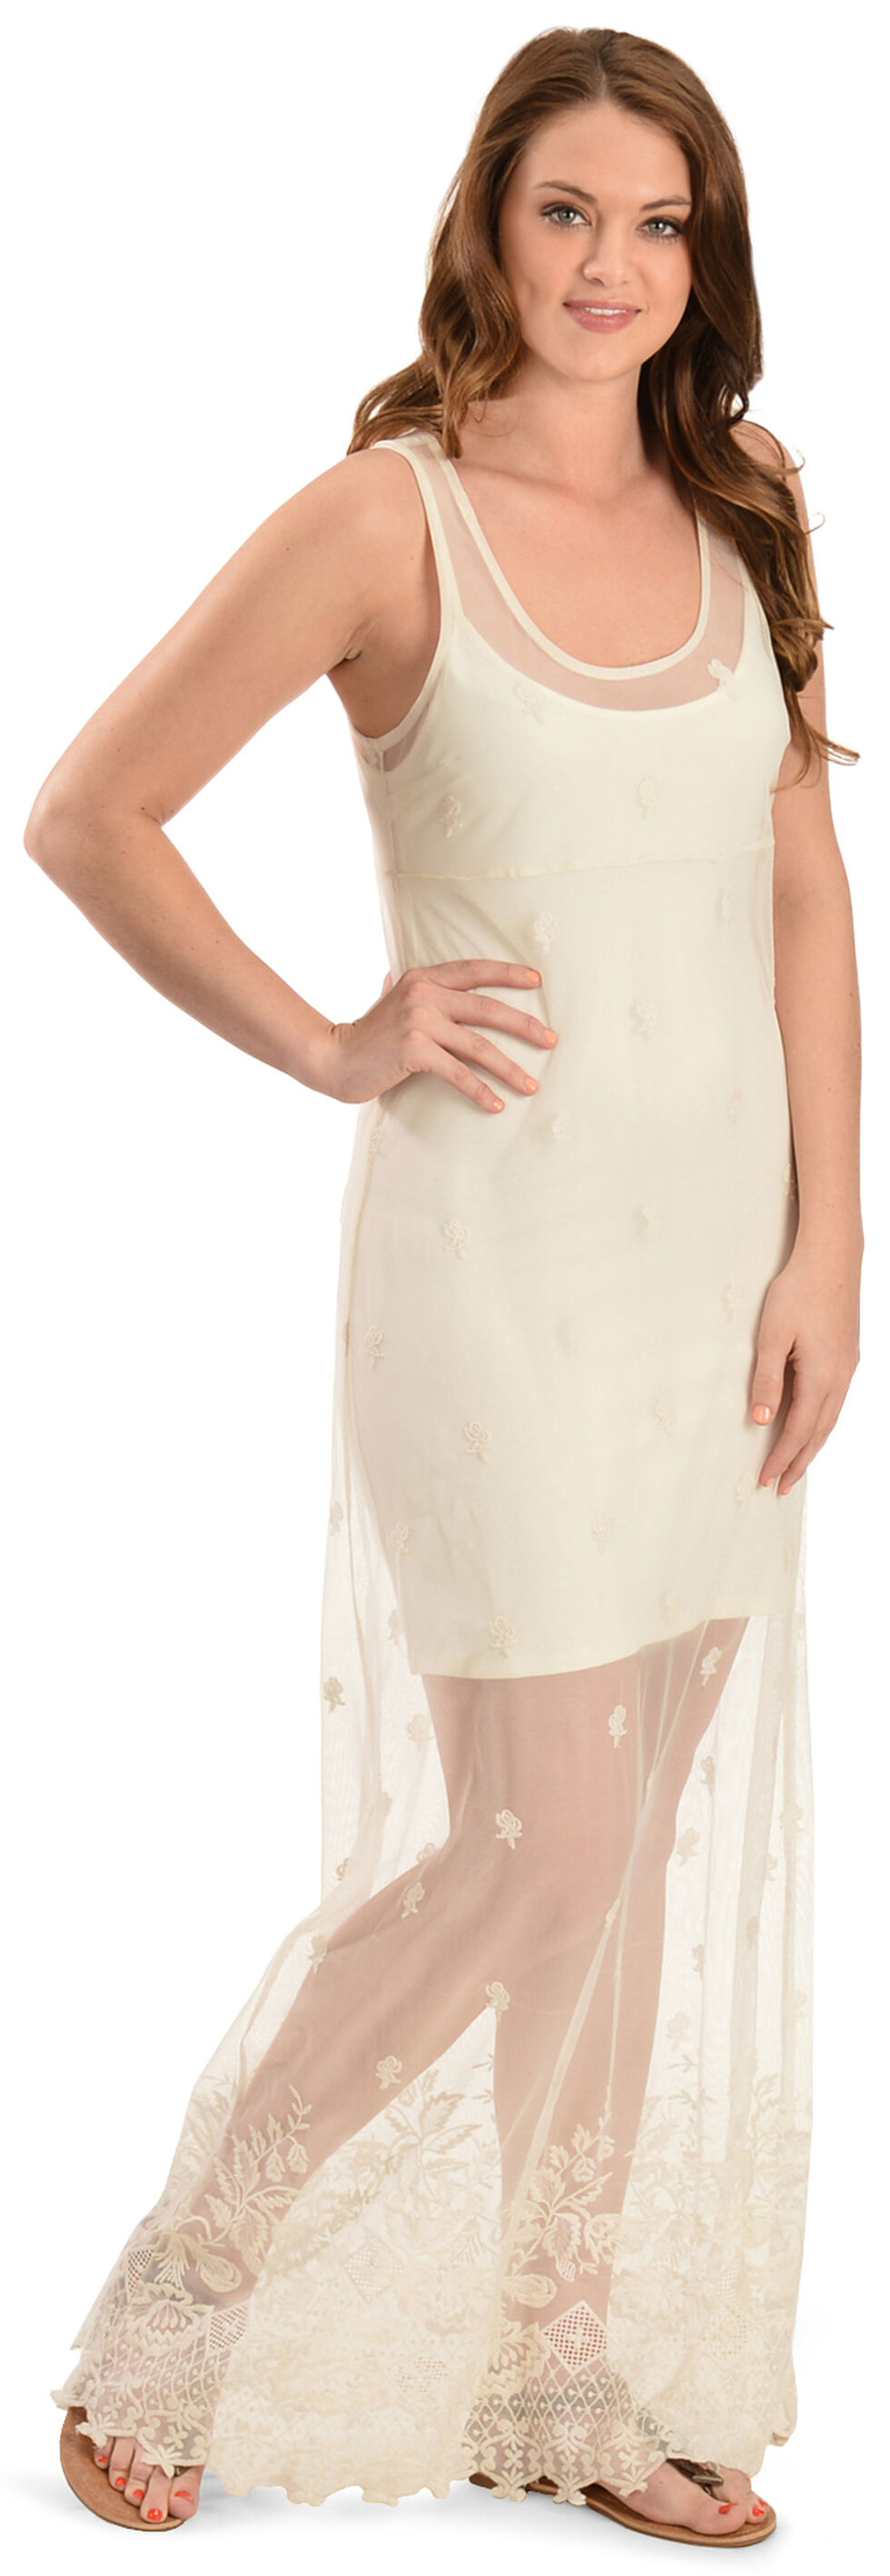 Black Swan Women's Puebla Lace Maxi Dress, Cream, hi-res